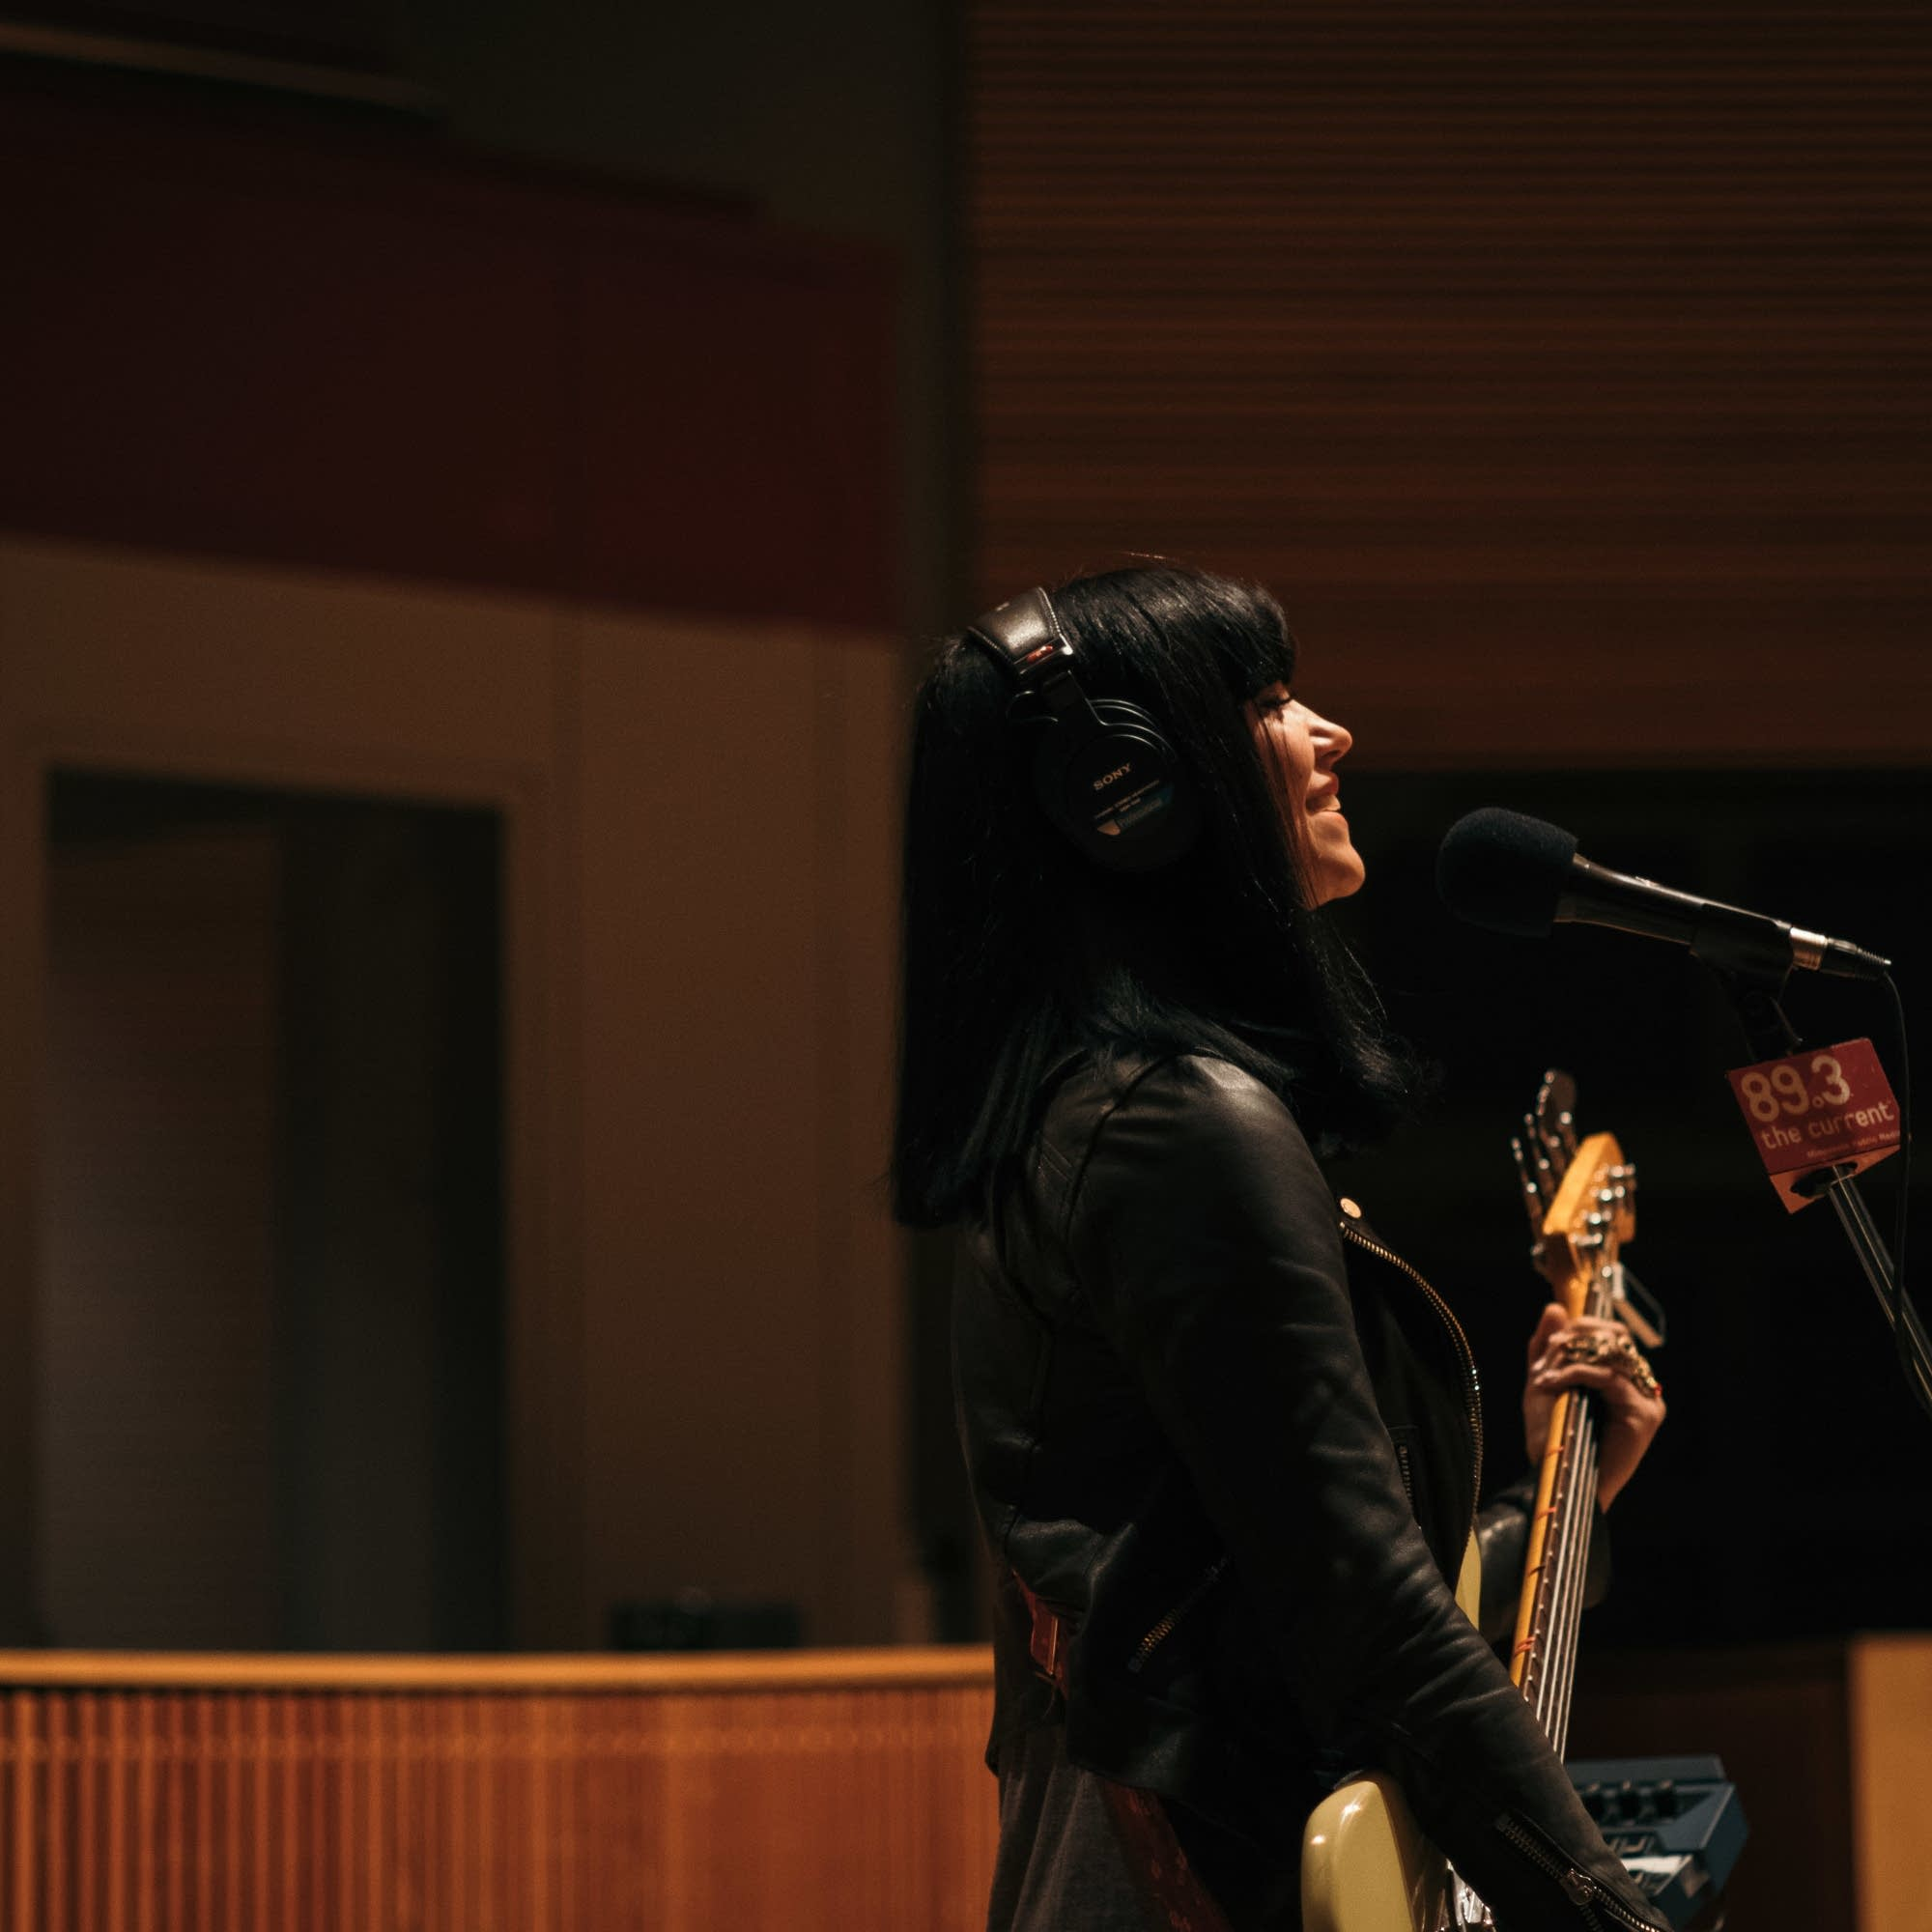 Khruangbin perform in The Current studio | The Current